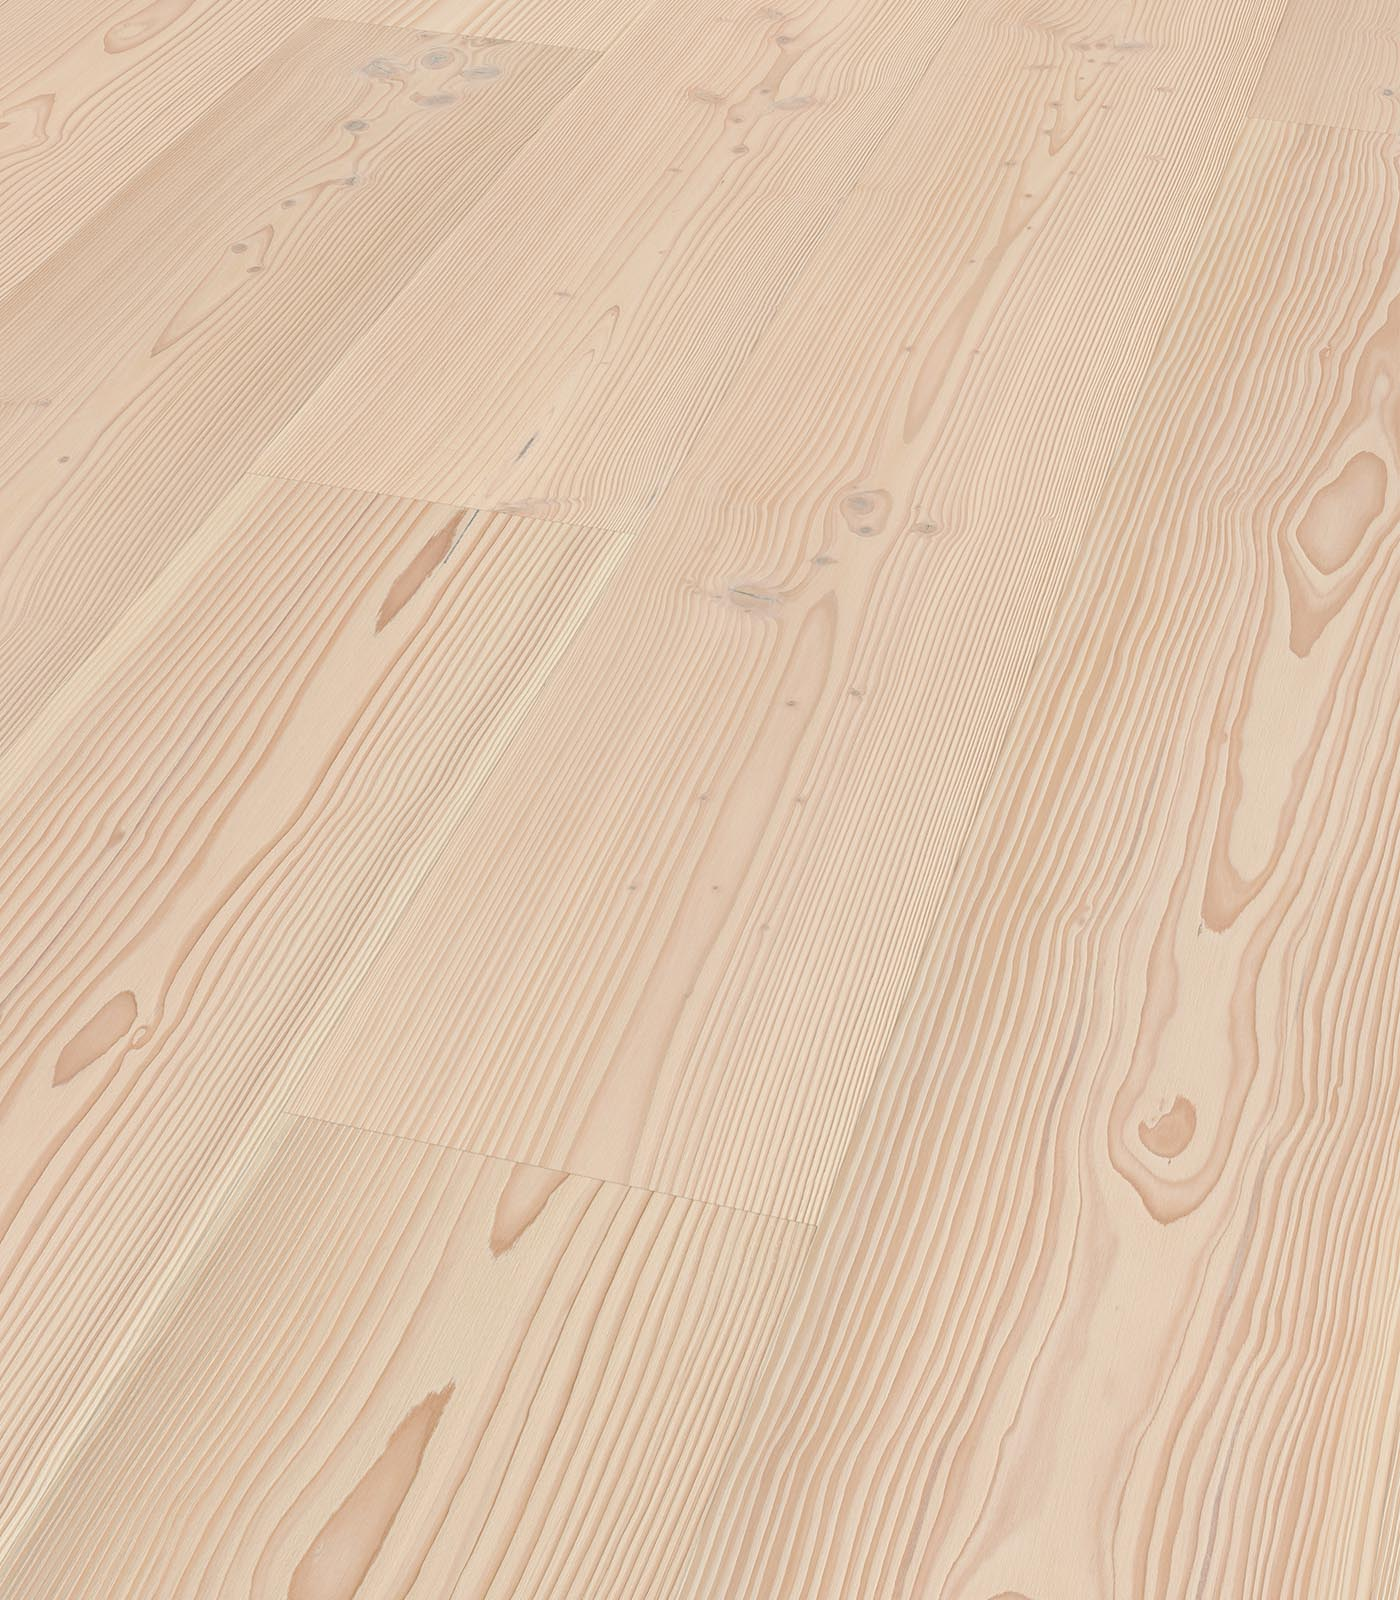 Origins Collection-Douglas Fir-very wide and very long planks-Forestry Timber-angle